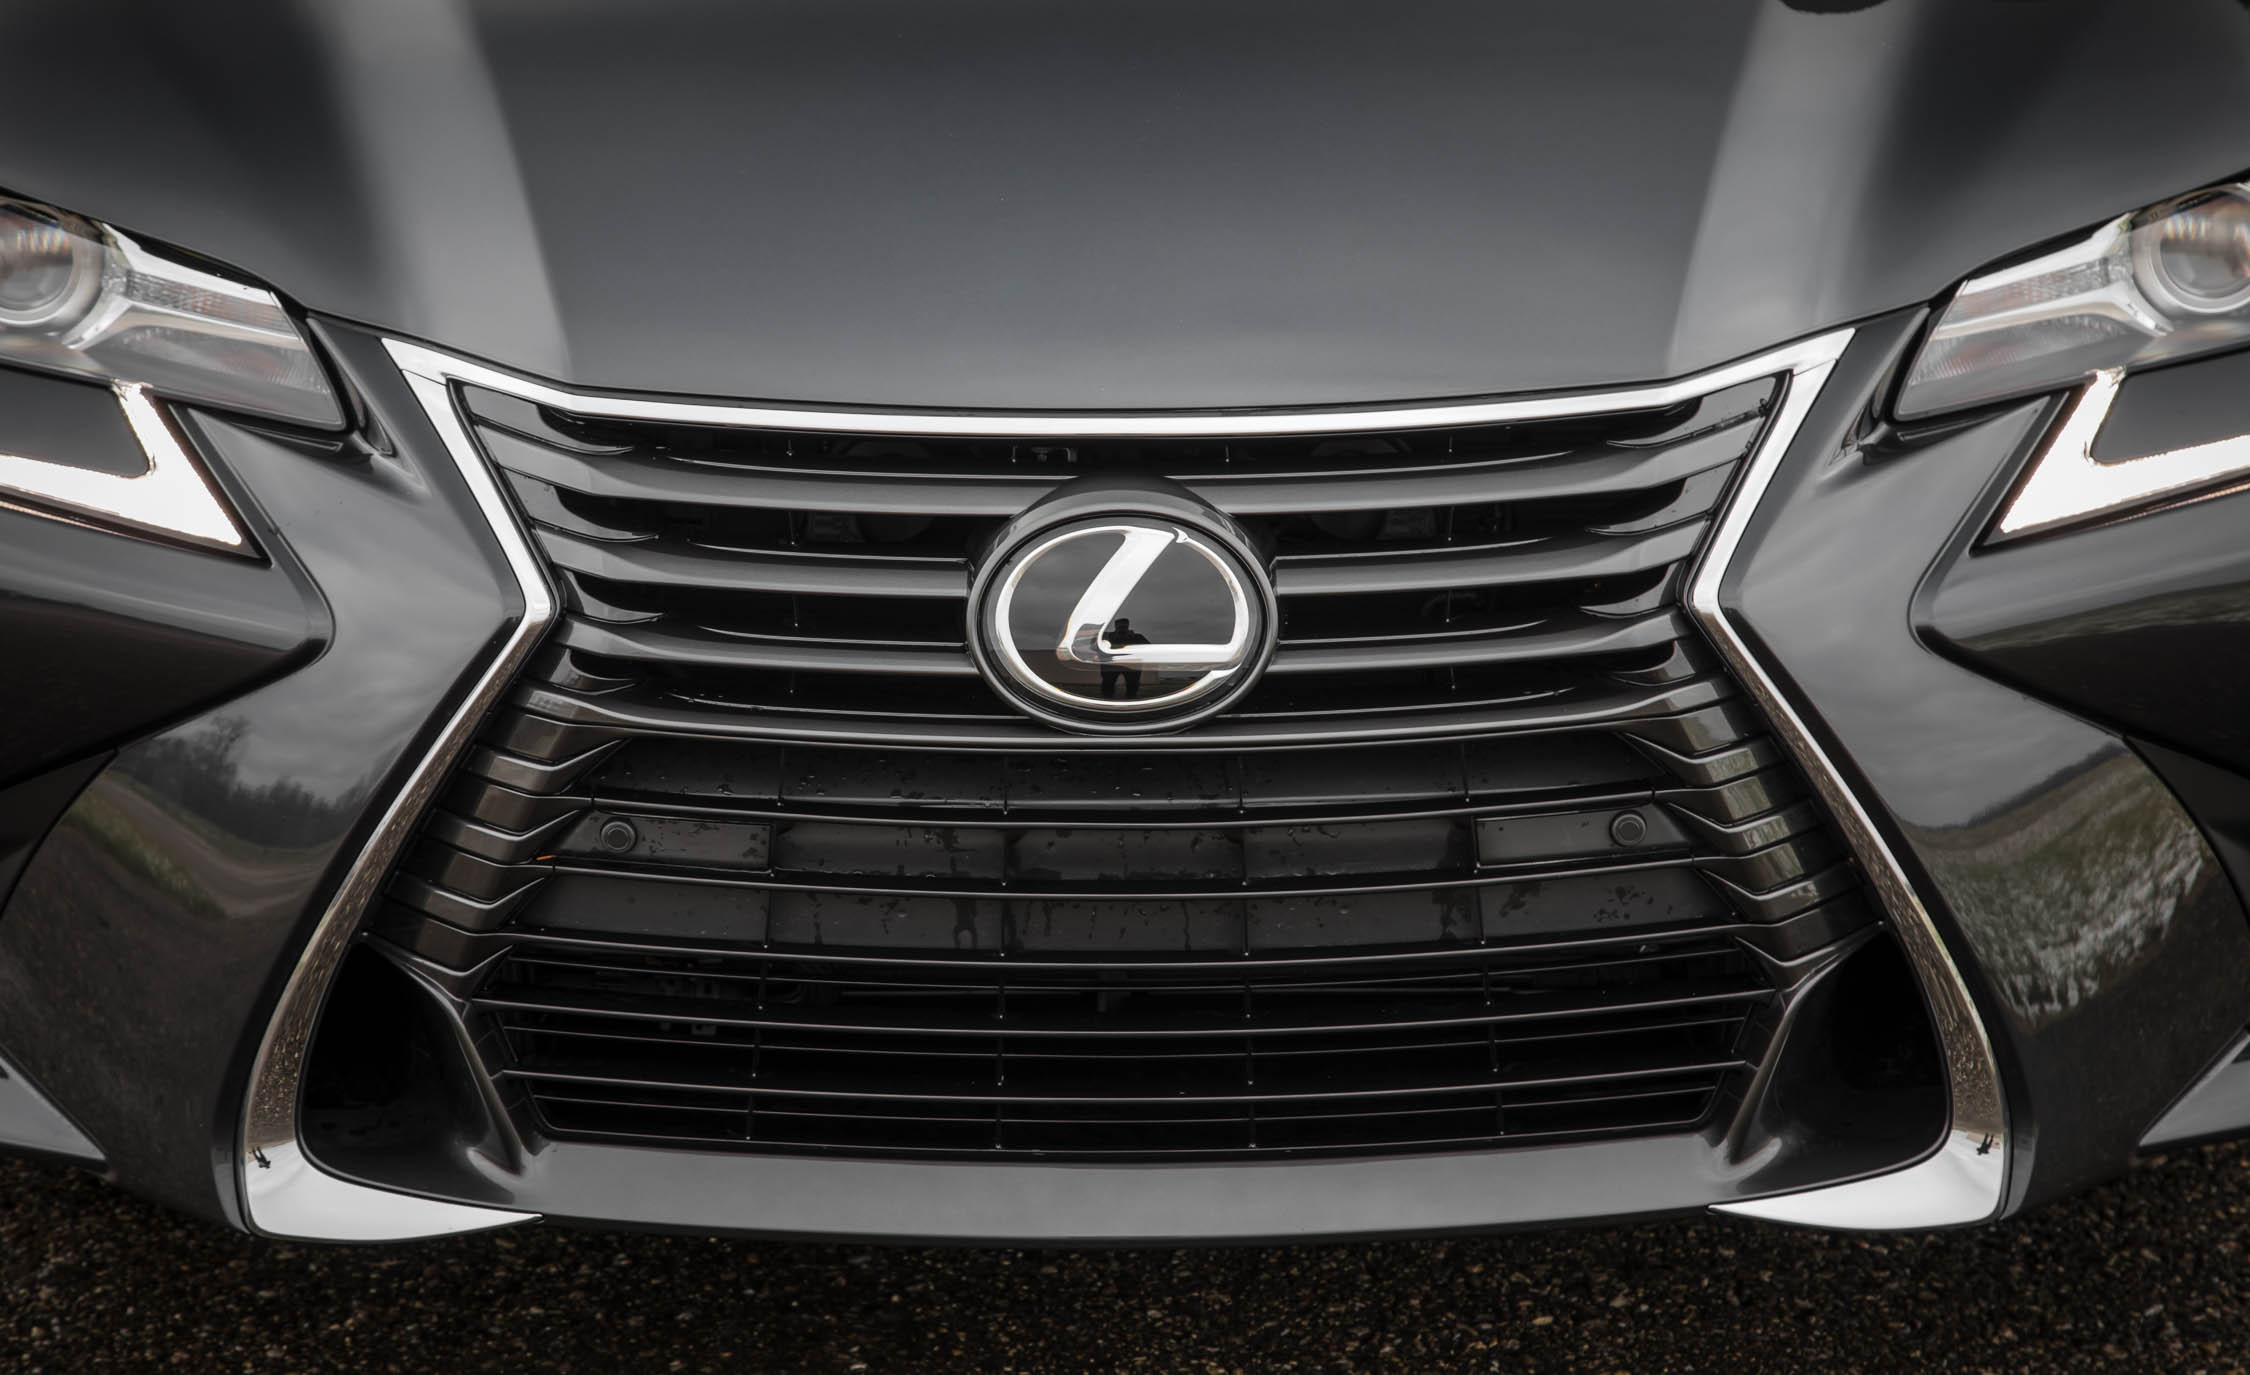 2017 Lexus GS200t Exterior View Grille (Photo 7 of 26)